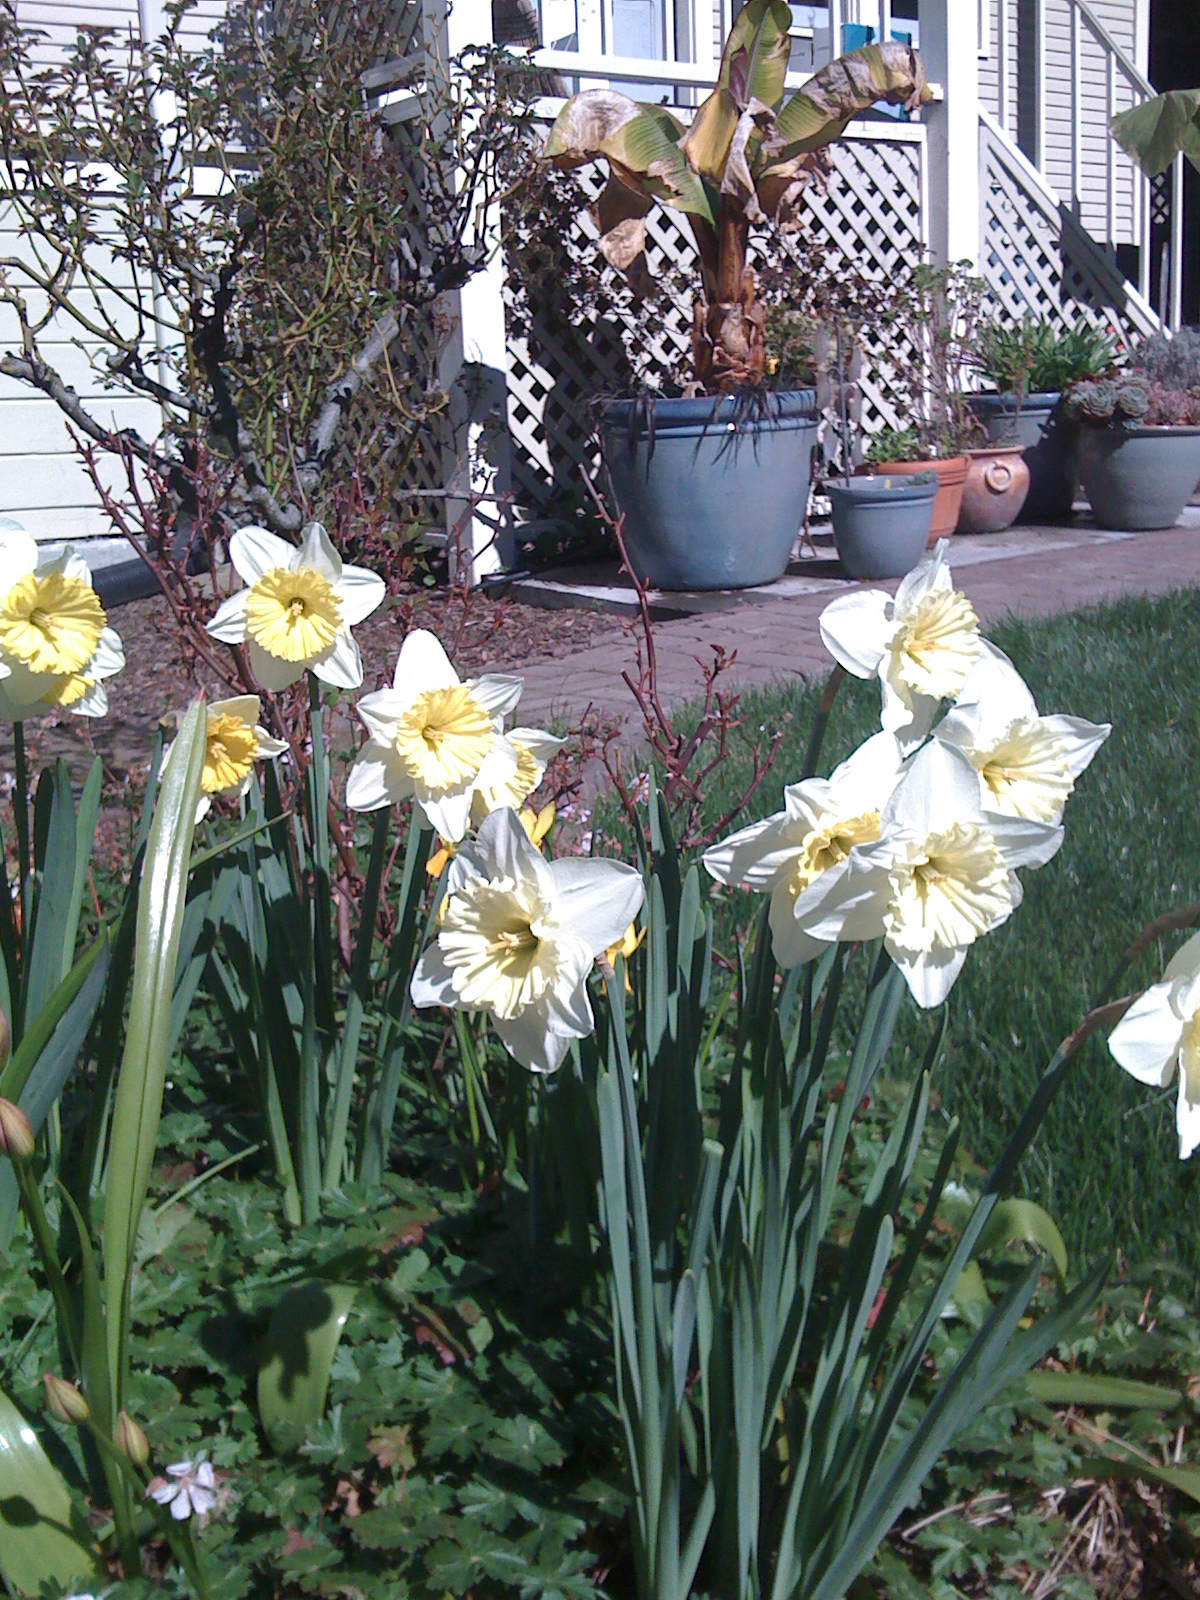 Daffodils highlight spring in a Berkeley garden.